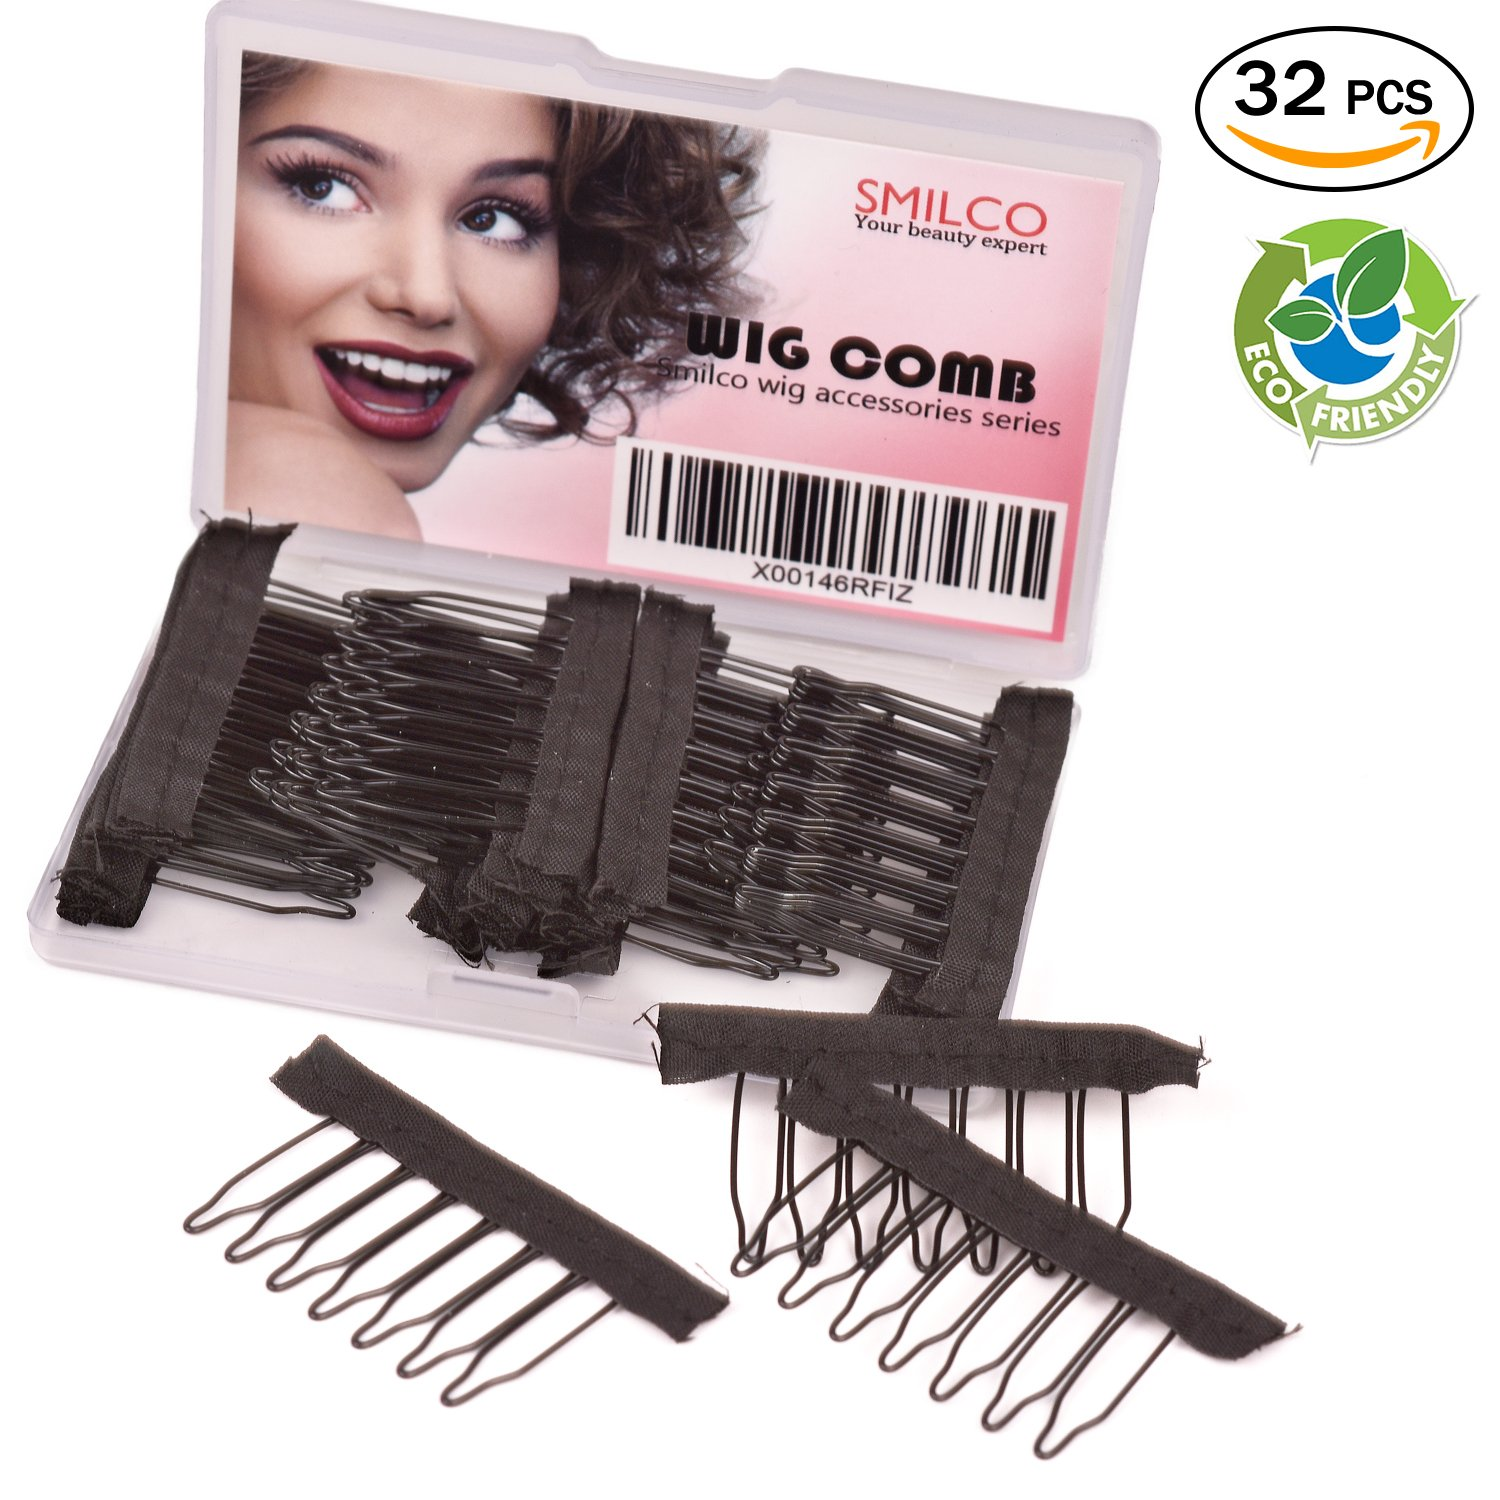 Smilco Wig Clips Pack of 32PCS Metal Wig Combs for Wig Caps Making Wigs Black (32 pieces / pack) QDSK